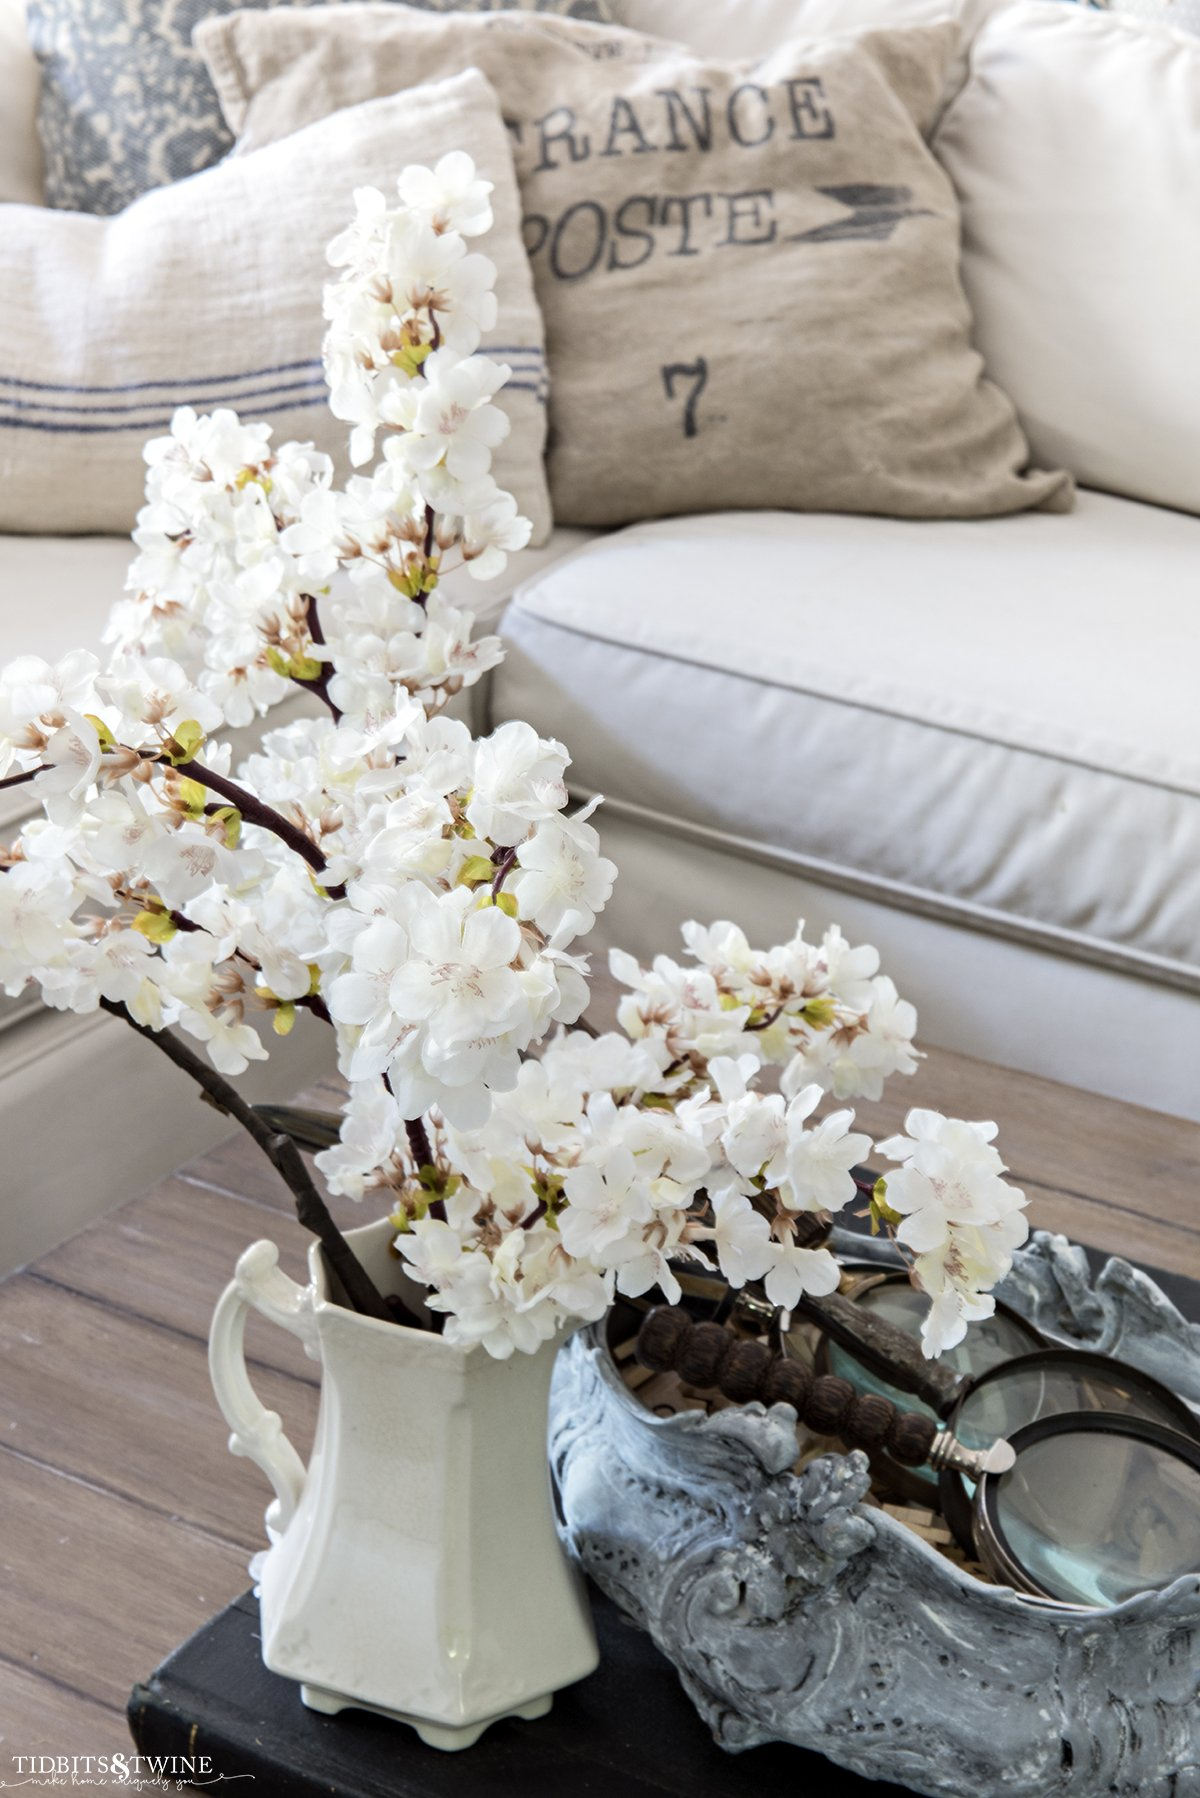 cherry blossom stems in an ironstone pitcher on coffee table with sectional sofa in background with french pillows